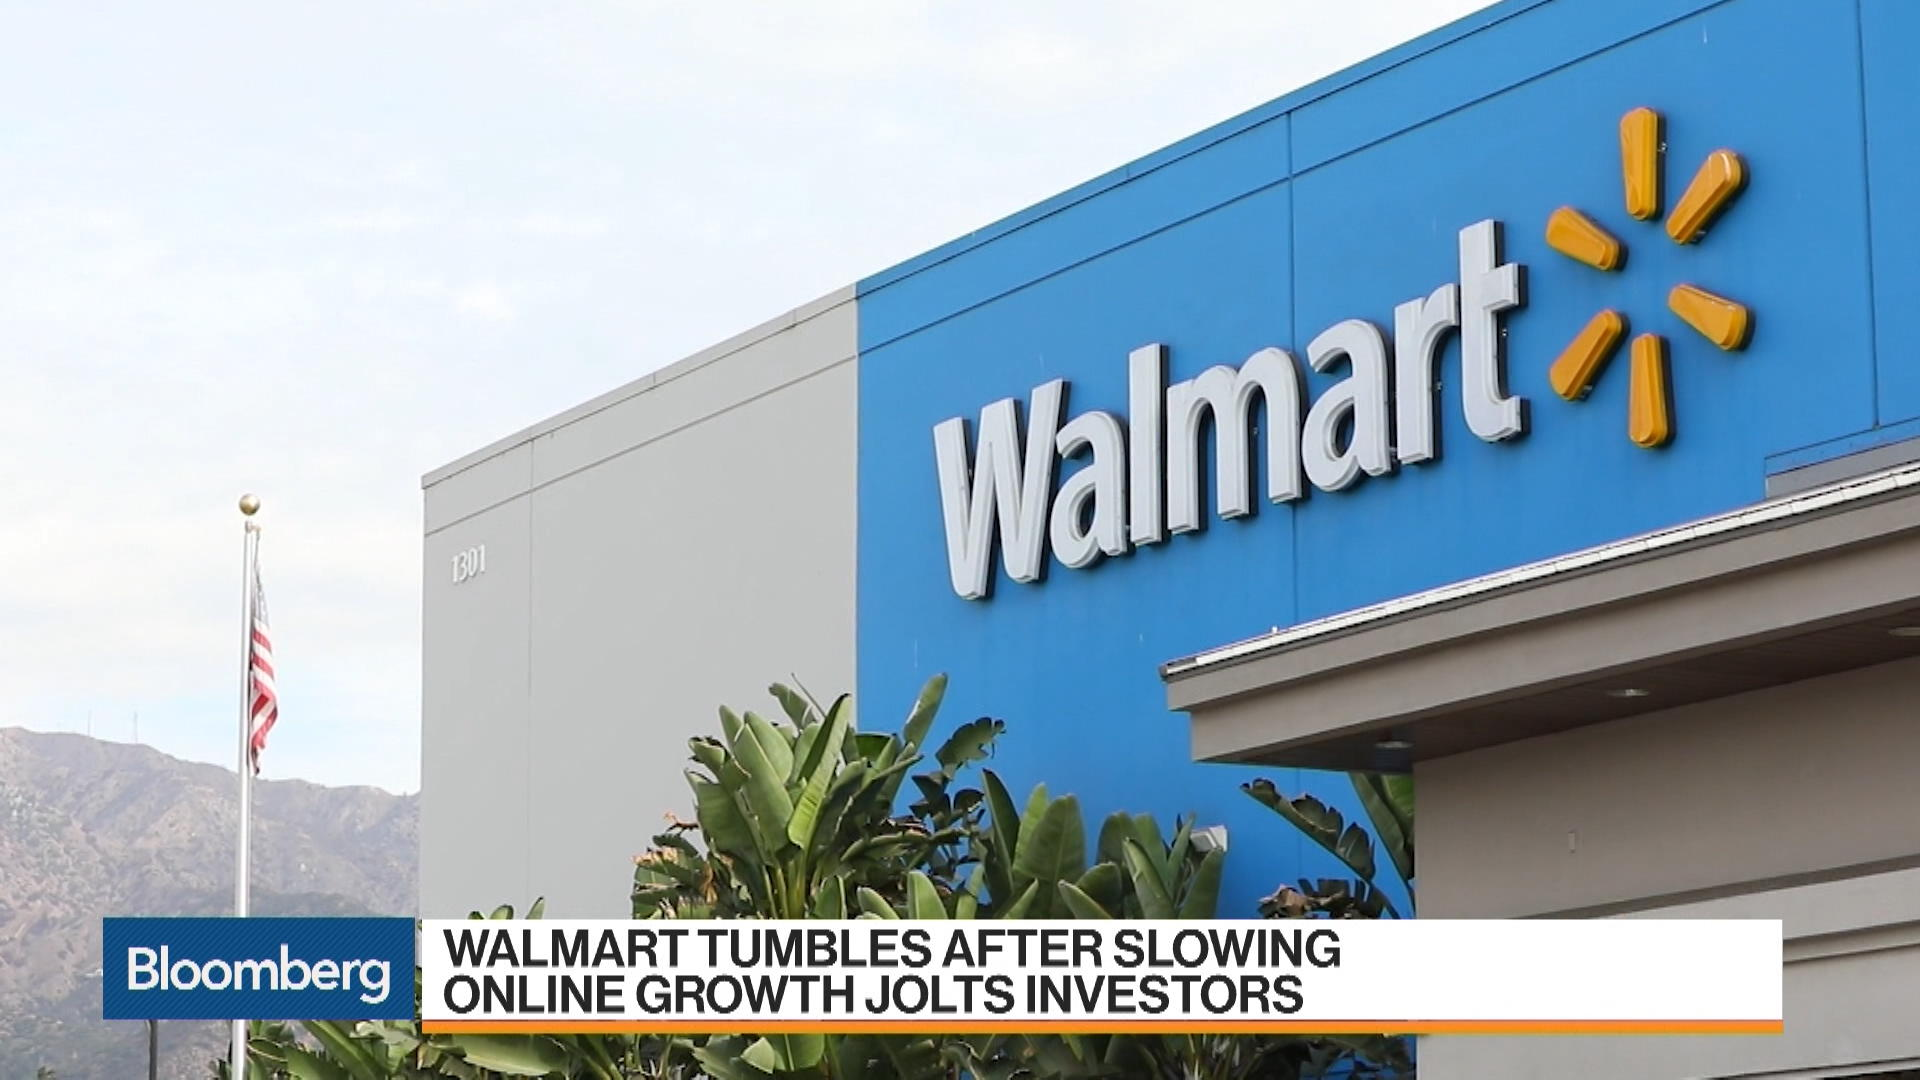 Walmart's Amazon Killer Goes From Superstar to Man on Hot